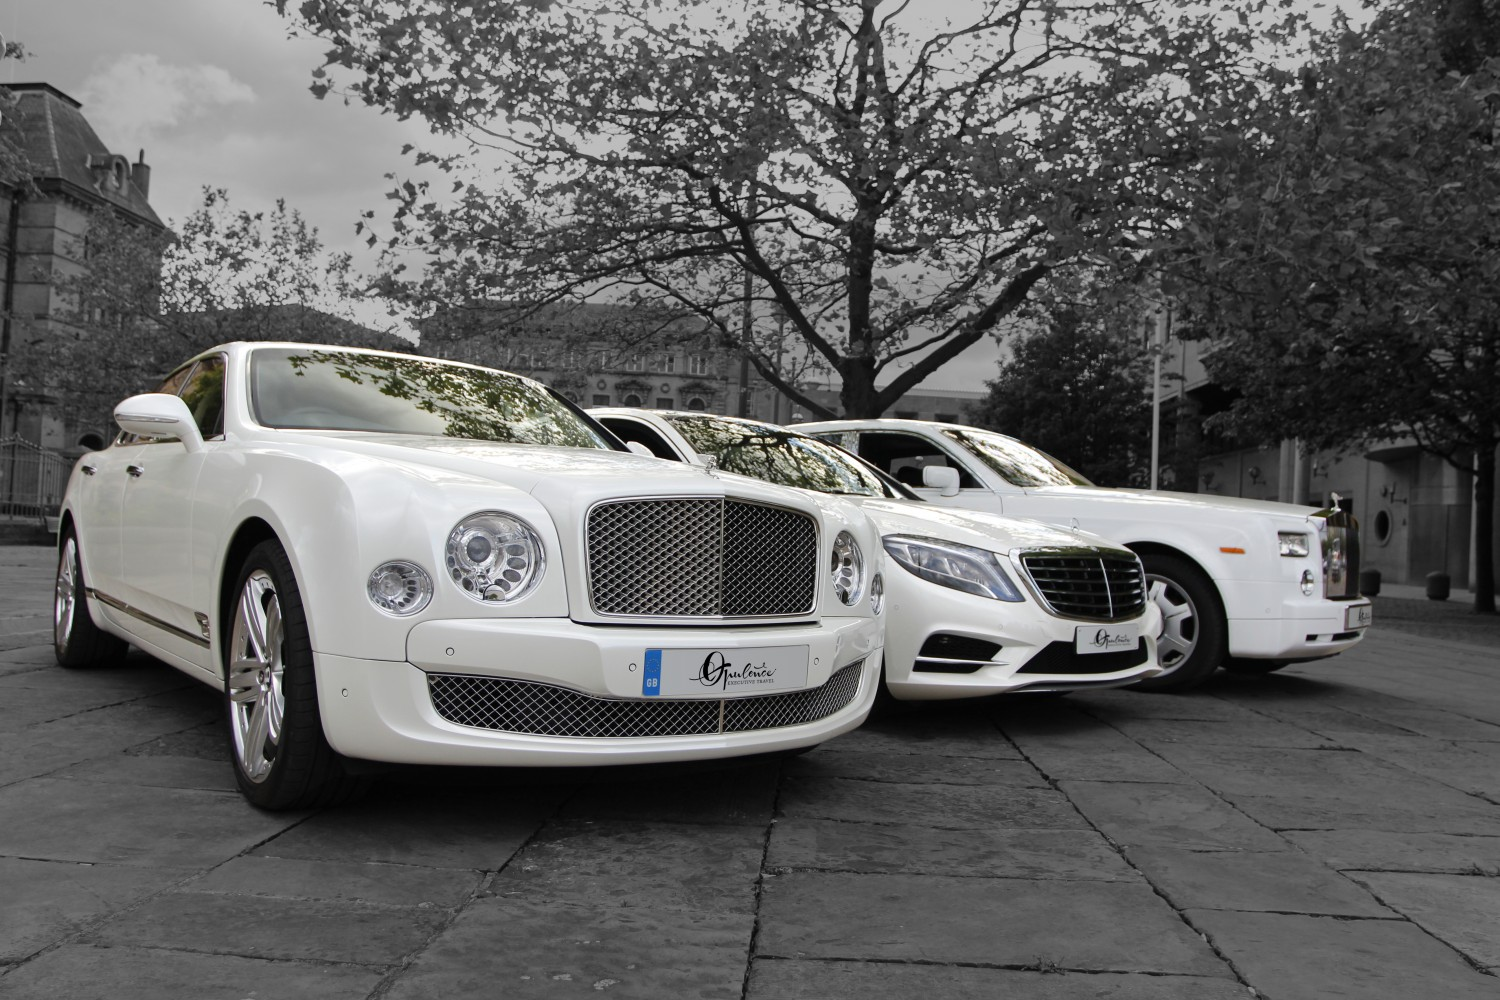 Opulence Executive Travel The Home Of Executive Travel